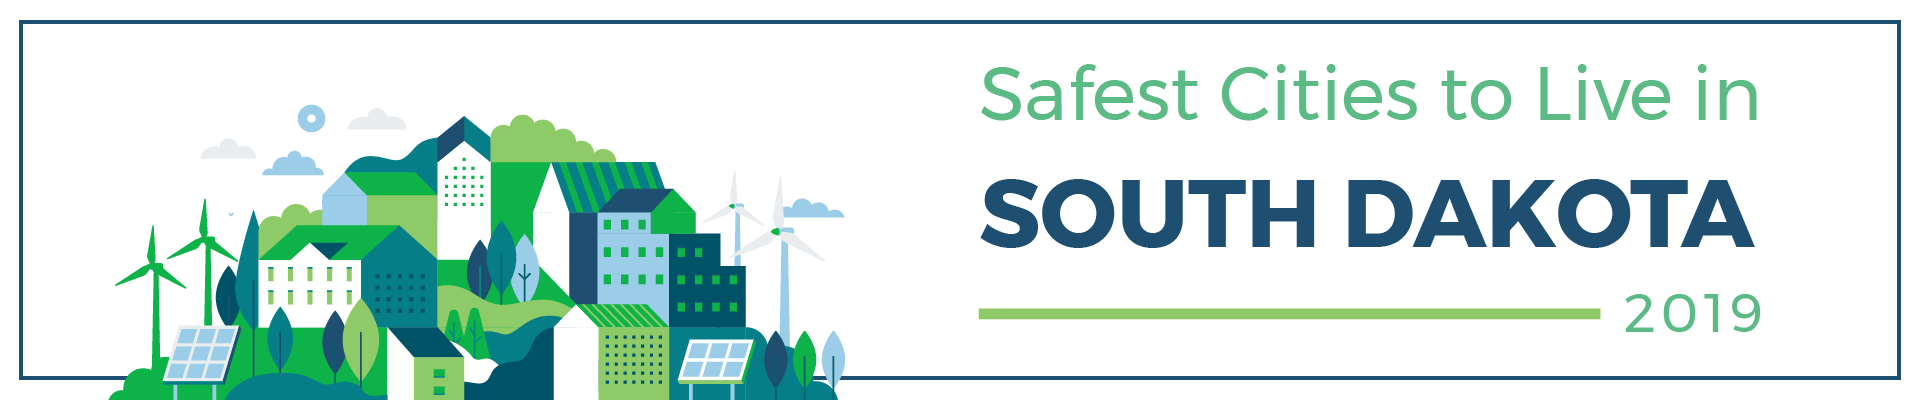 header - safest_cities_south_dakota_2019